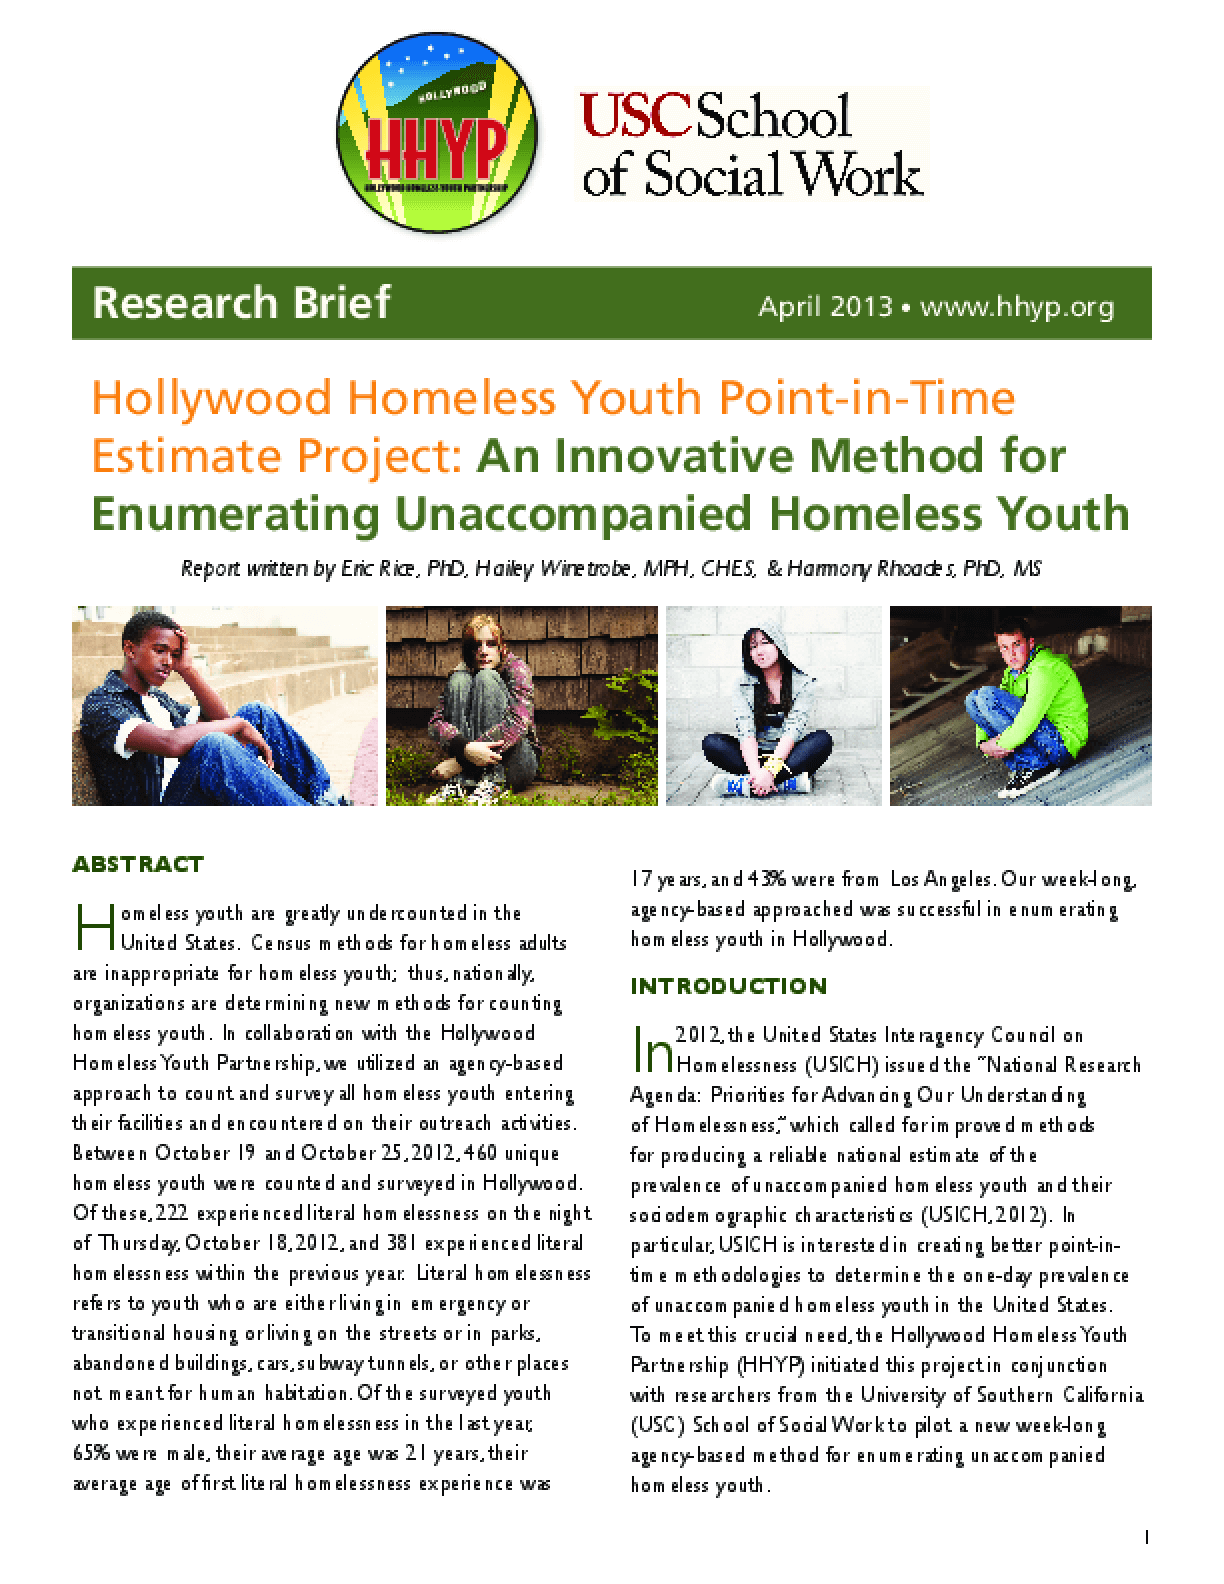 Hollywood Homeless Youth Point-in-Time  Estimate Project:  An Innovative Method for  Enumerating Unaccompanied Homeless Youth